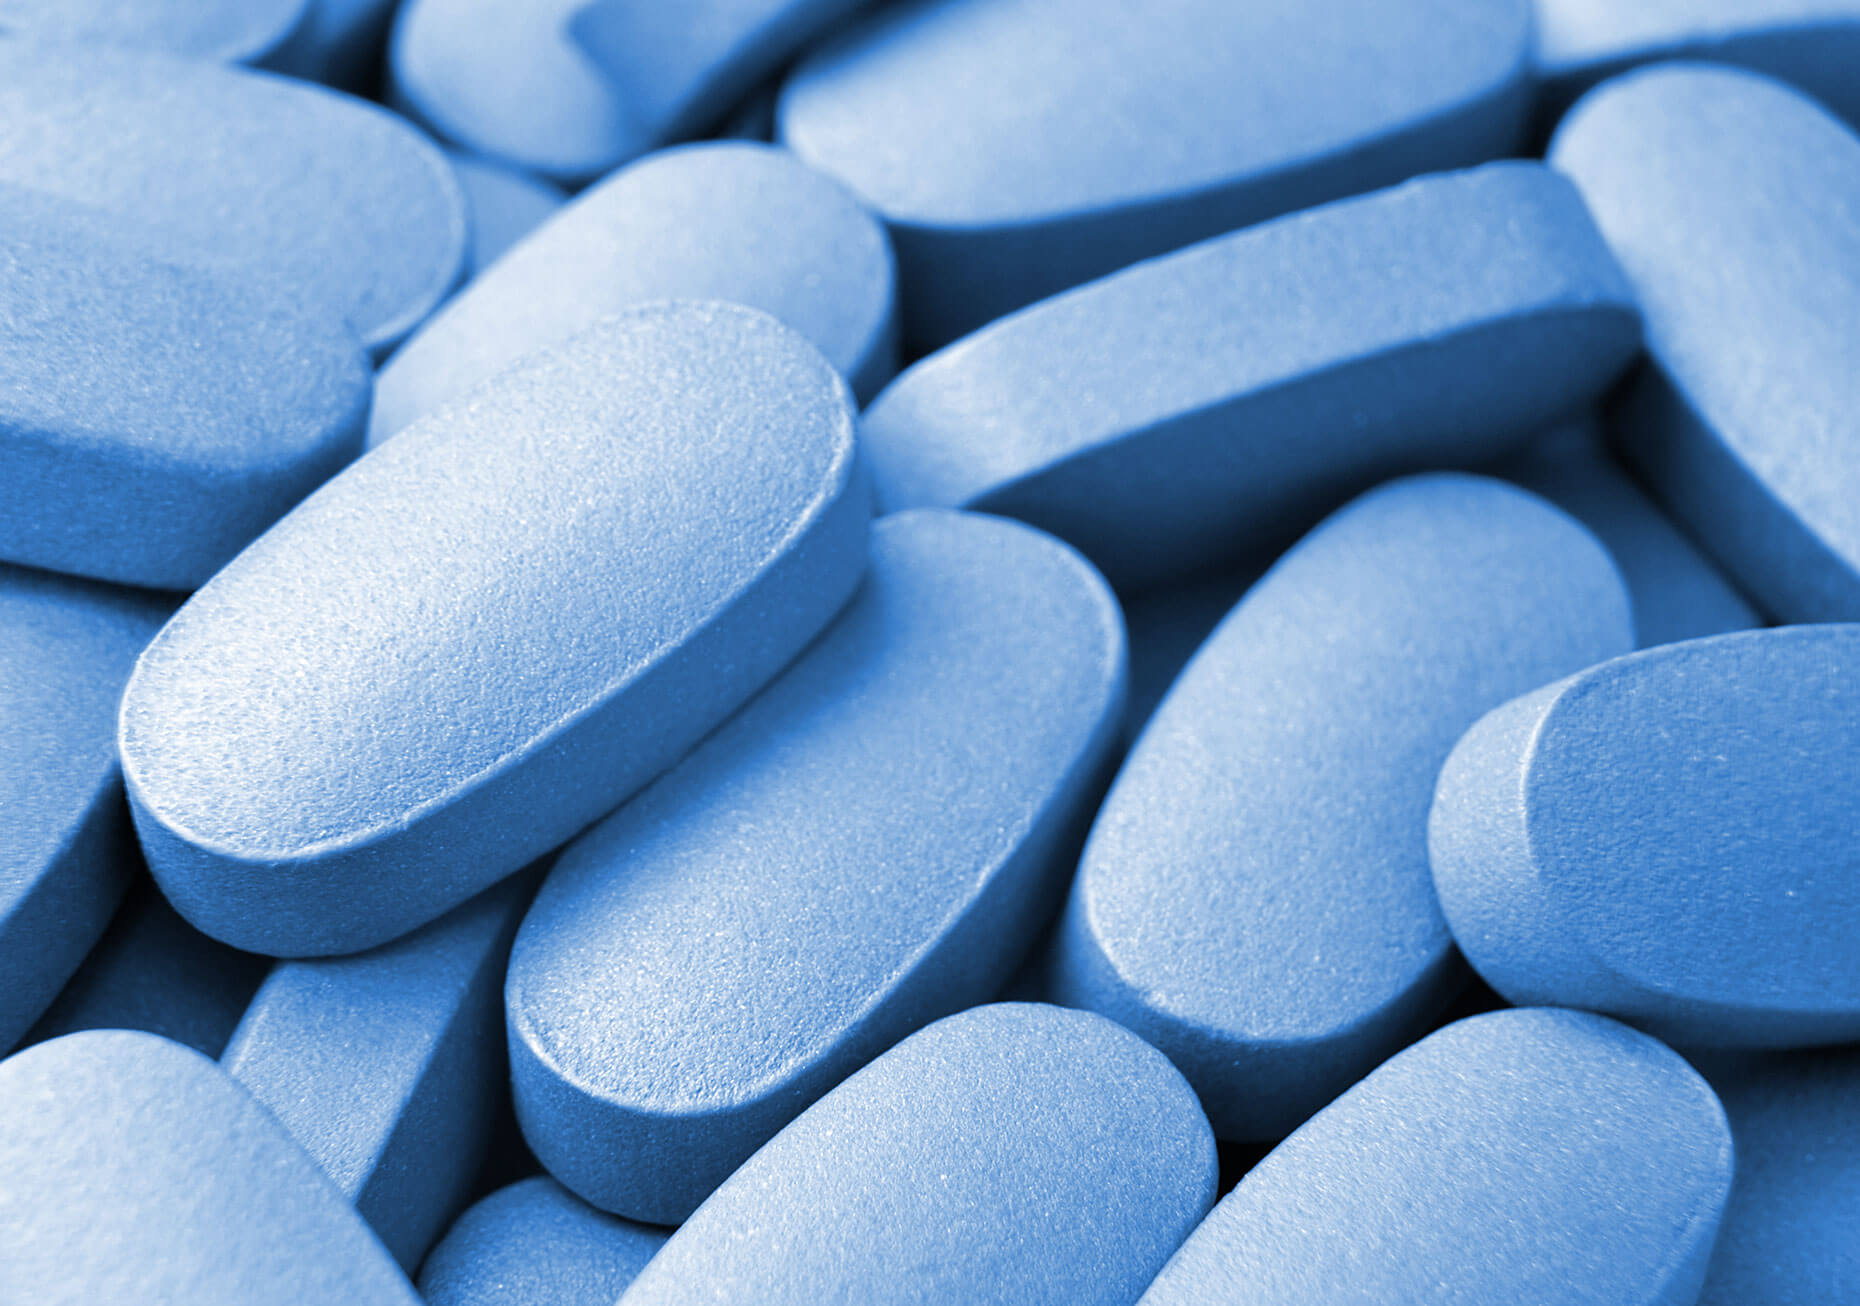 A close-up of various blue, oval pills